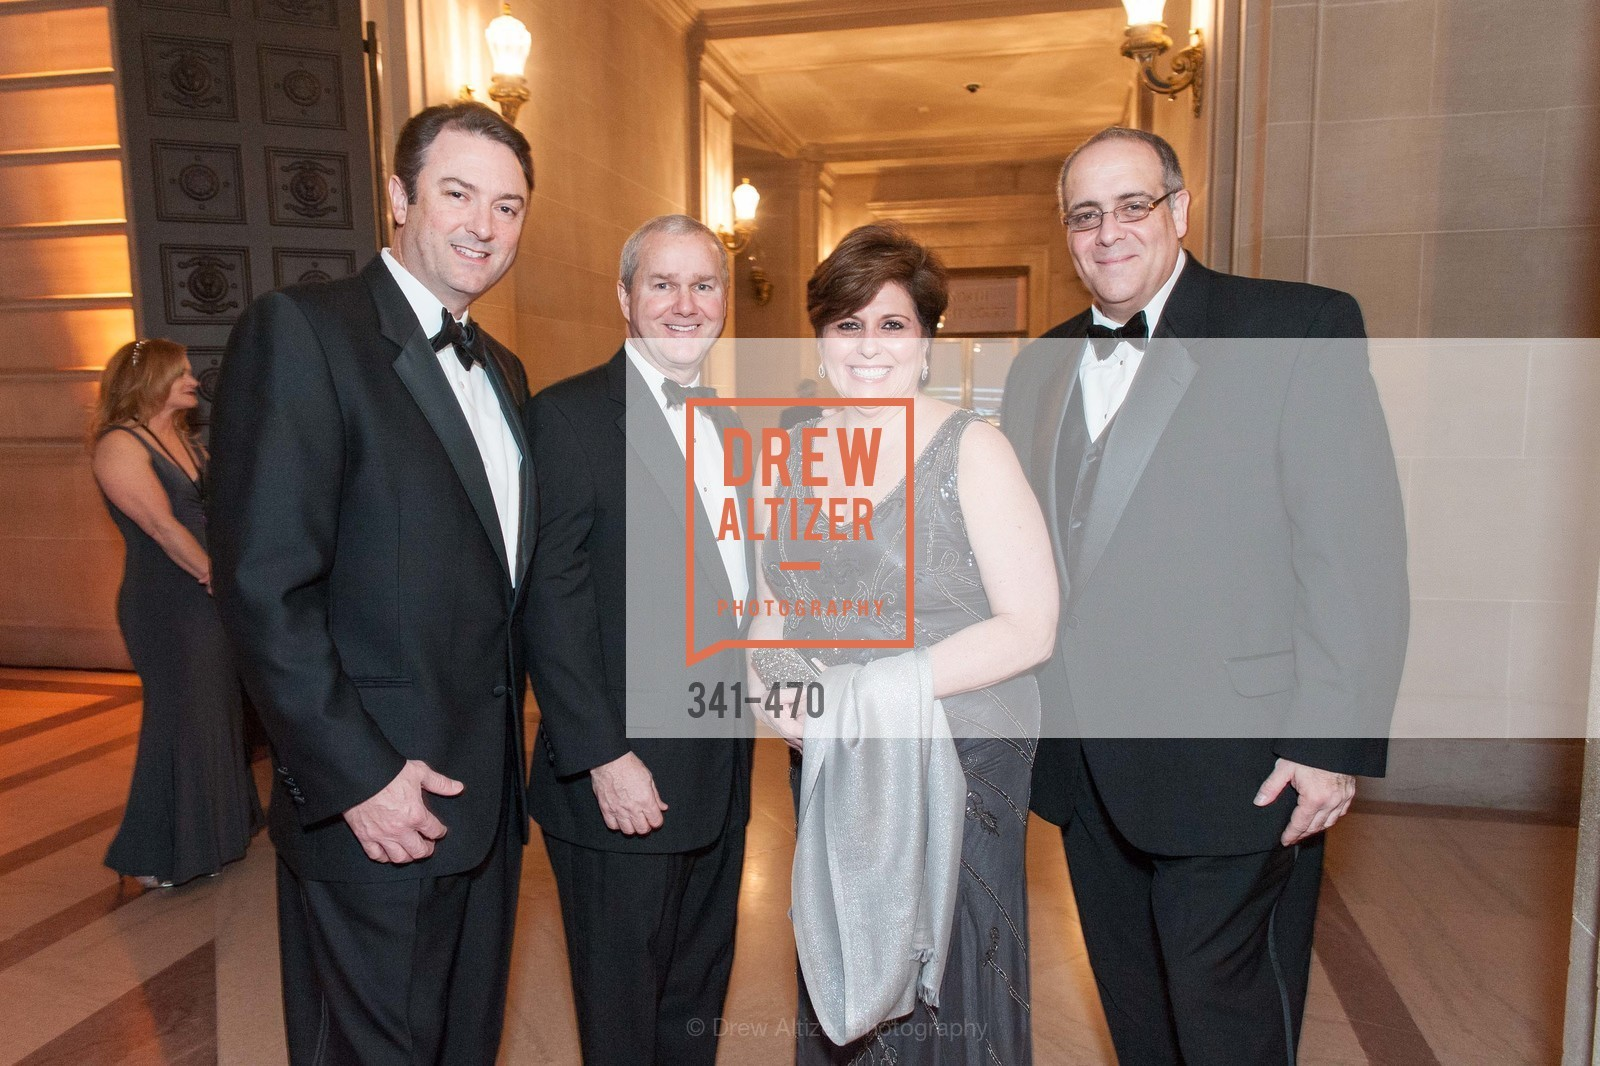 Mark Pittsey, Gerald Joyce, Laurie Wojcik, Jose Rasco, SAN FRANCISCO BALLET Opening Night Gala: PHENOMENAL - Arrivals, US. SF City Hall, January 22nd, 2014,Drew Altizer, Drew Altizer Photography, full-service event agency, private events, San Francisco photographer, photographer California